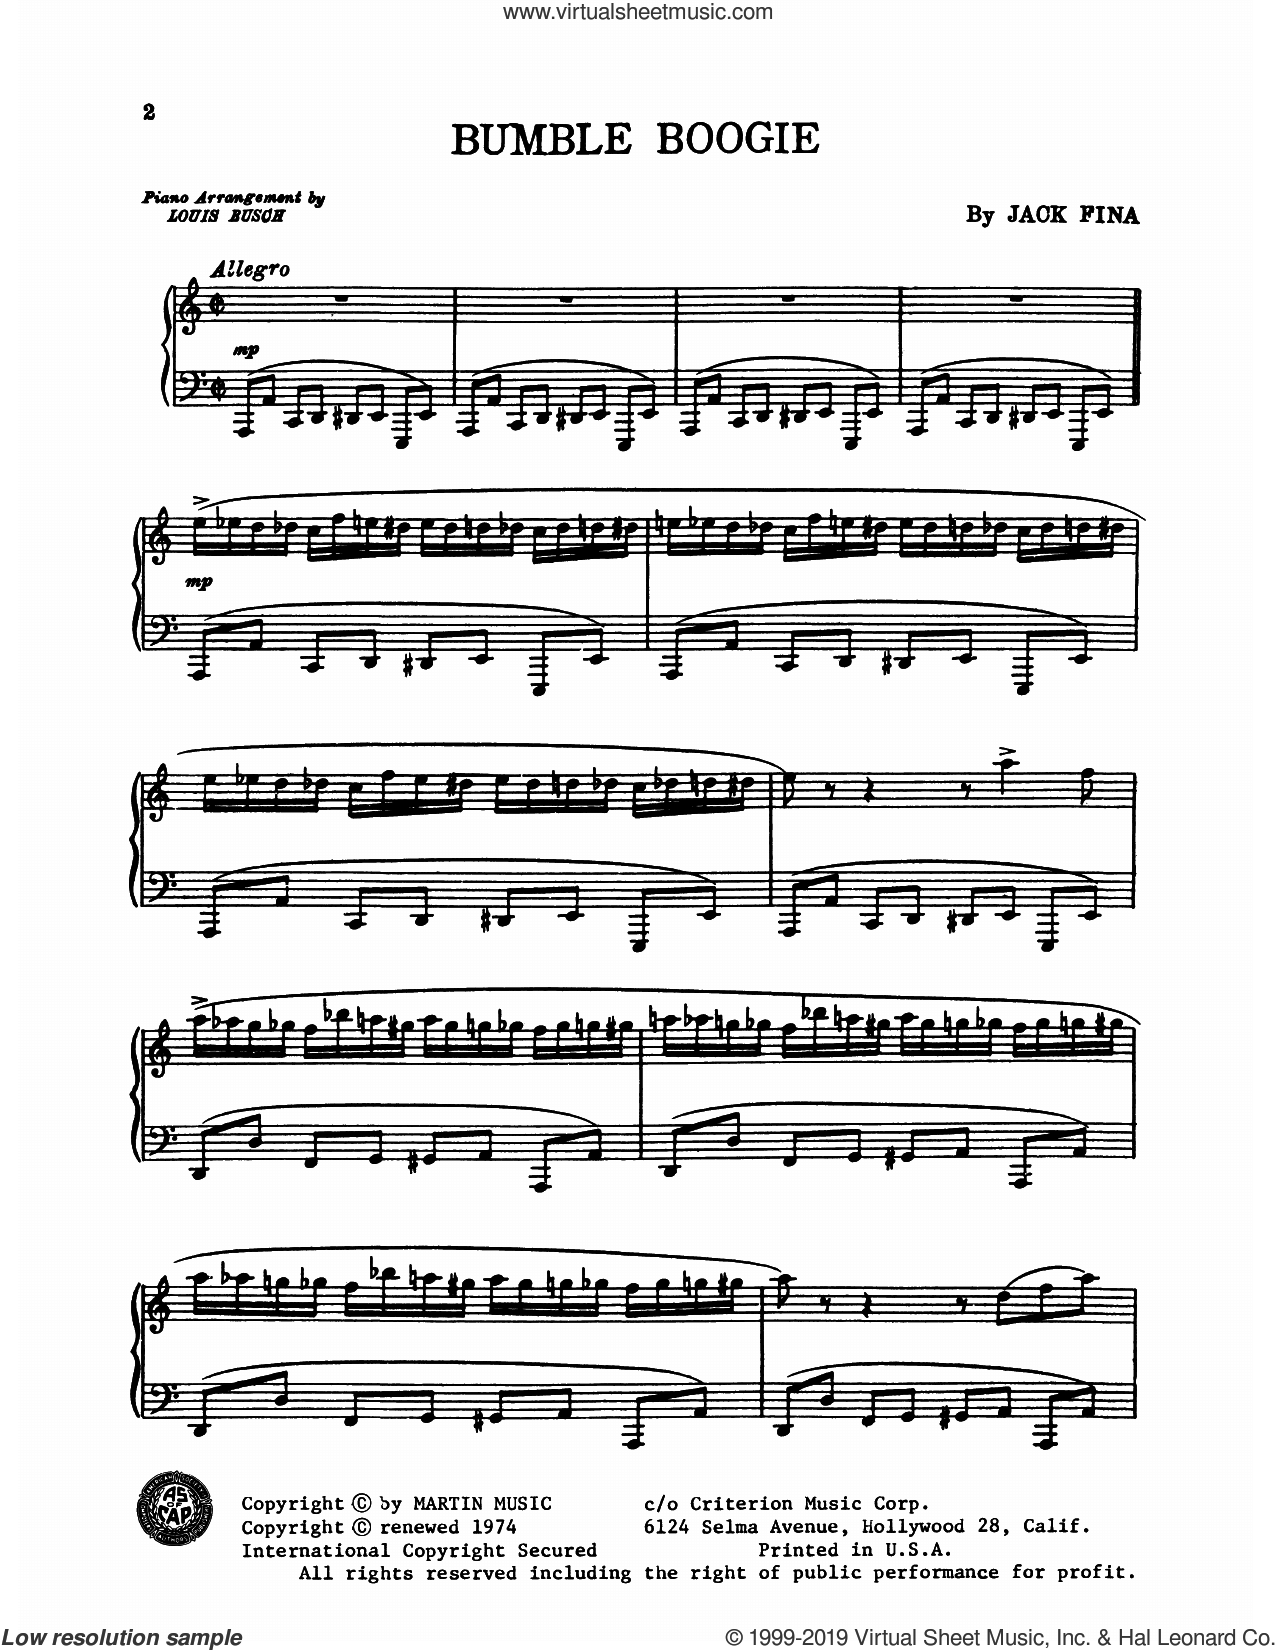 Bumble Boogie sheet music for piano solo by Freddy Martin and His Orchestra, Freddy Martin, Jack Fina and Nikolai Rimsky-Korsakov, intermediate skill level